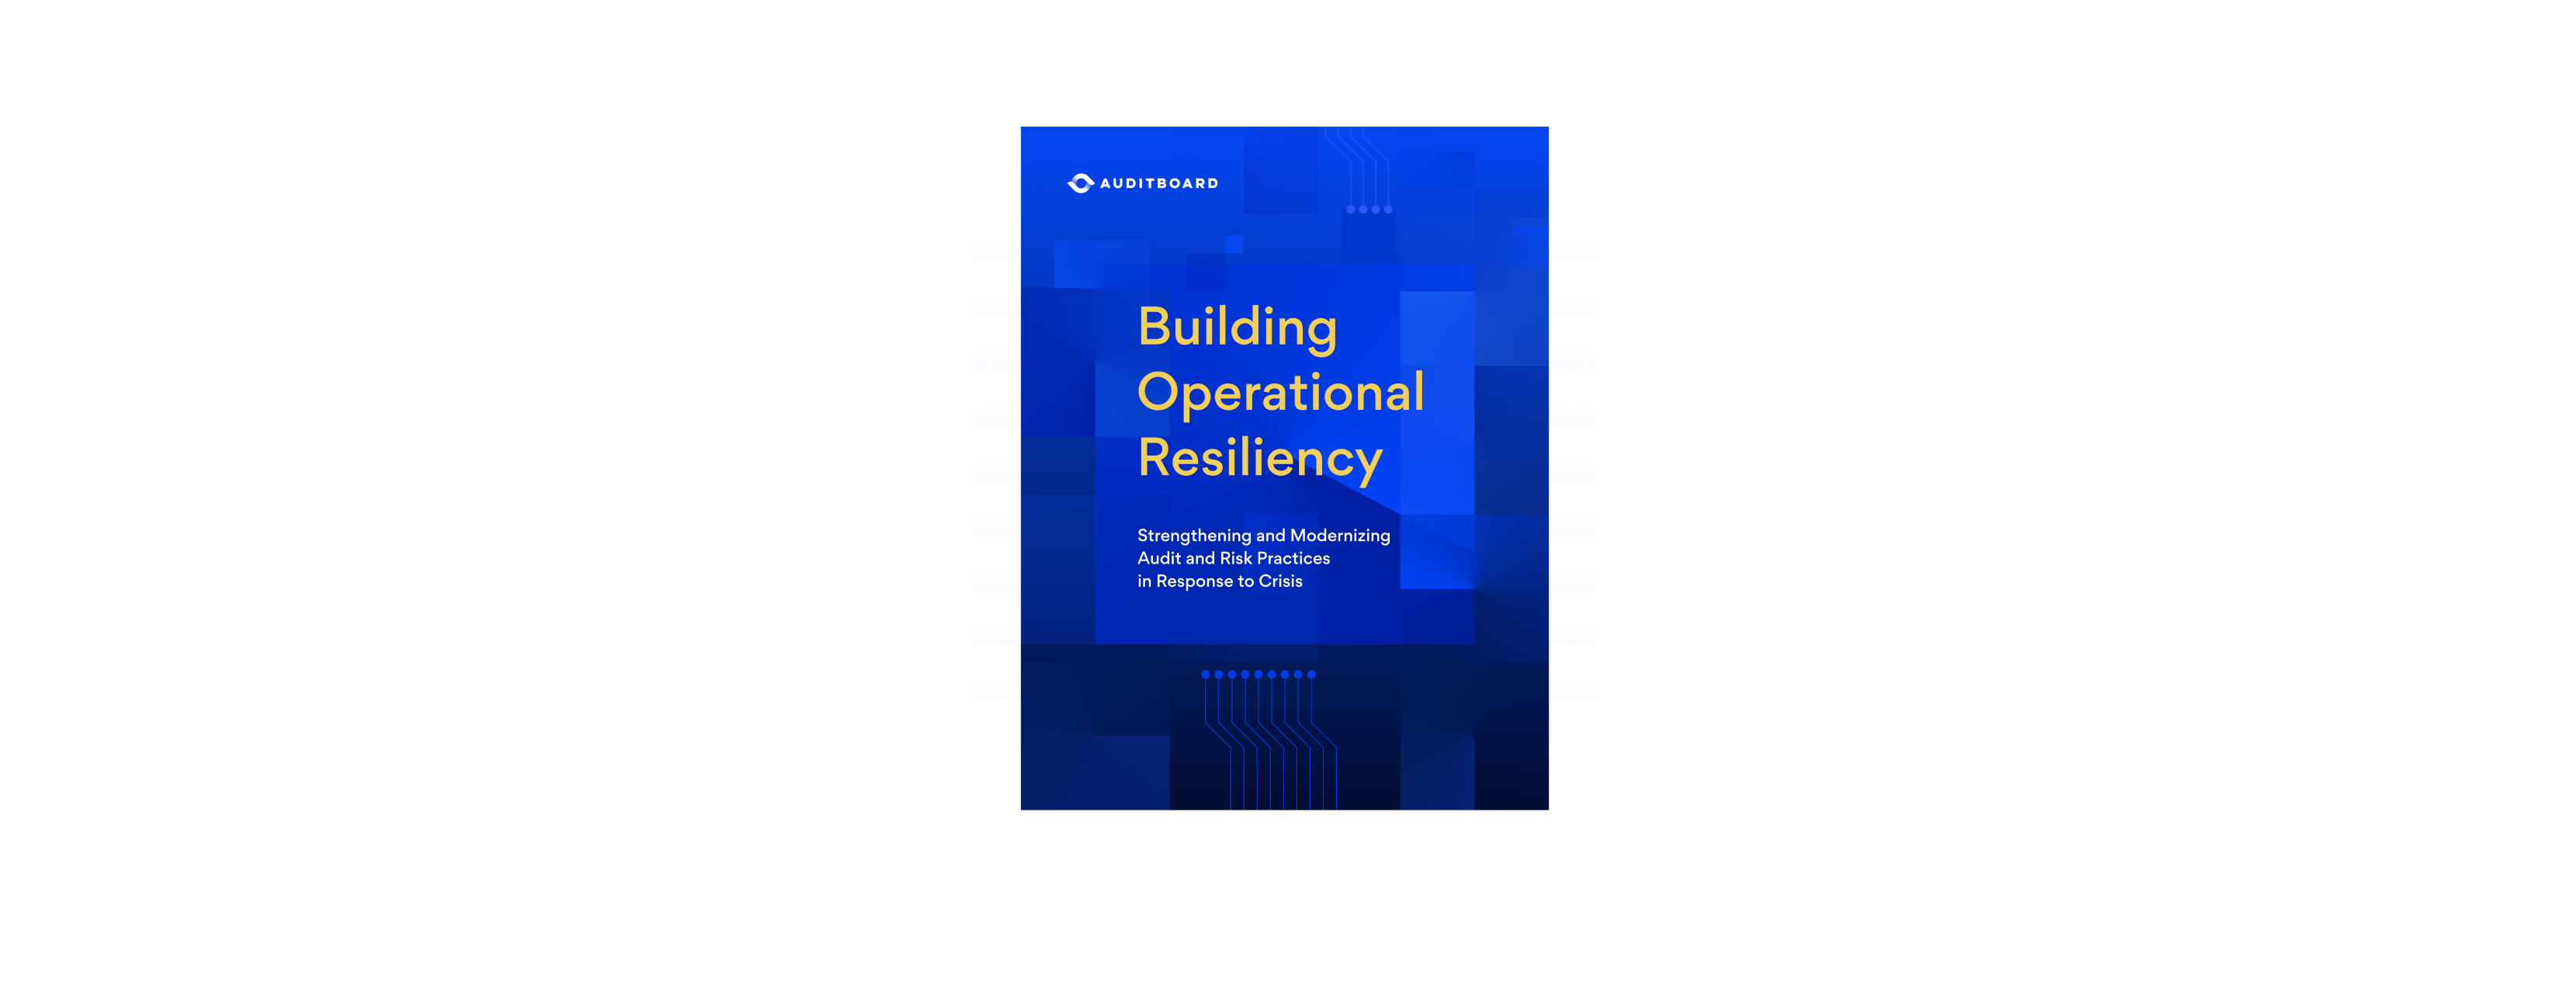 Building Operational Resiliency: Strengthening Audit & Risk Practices